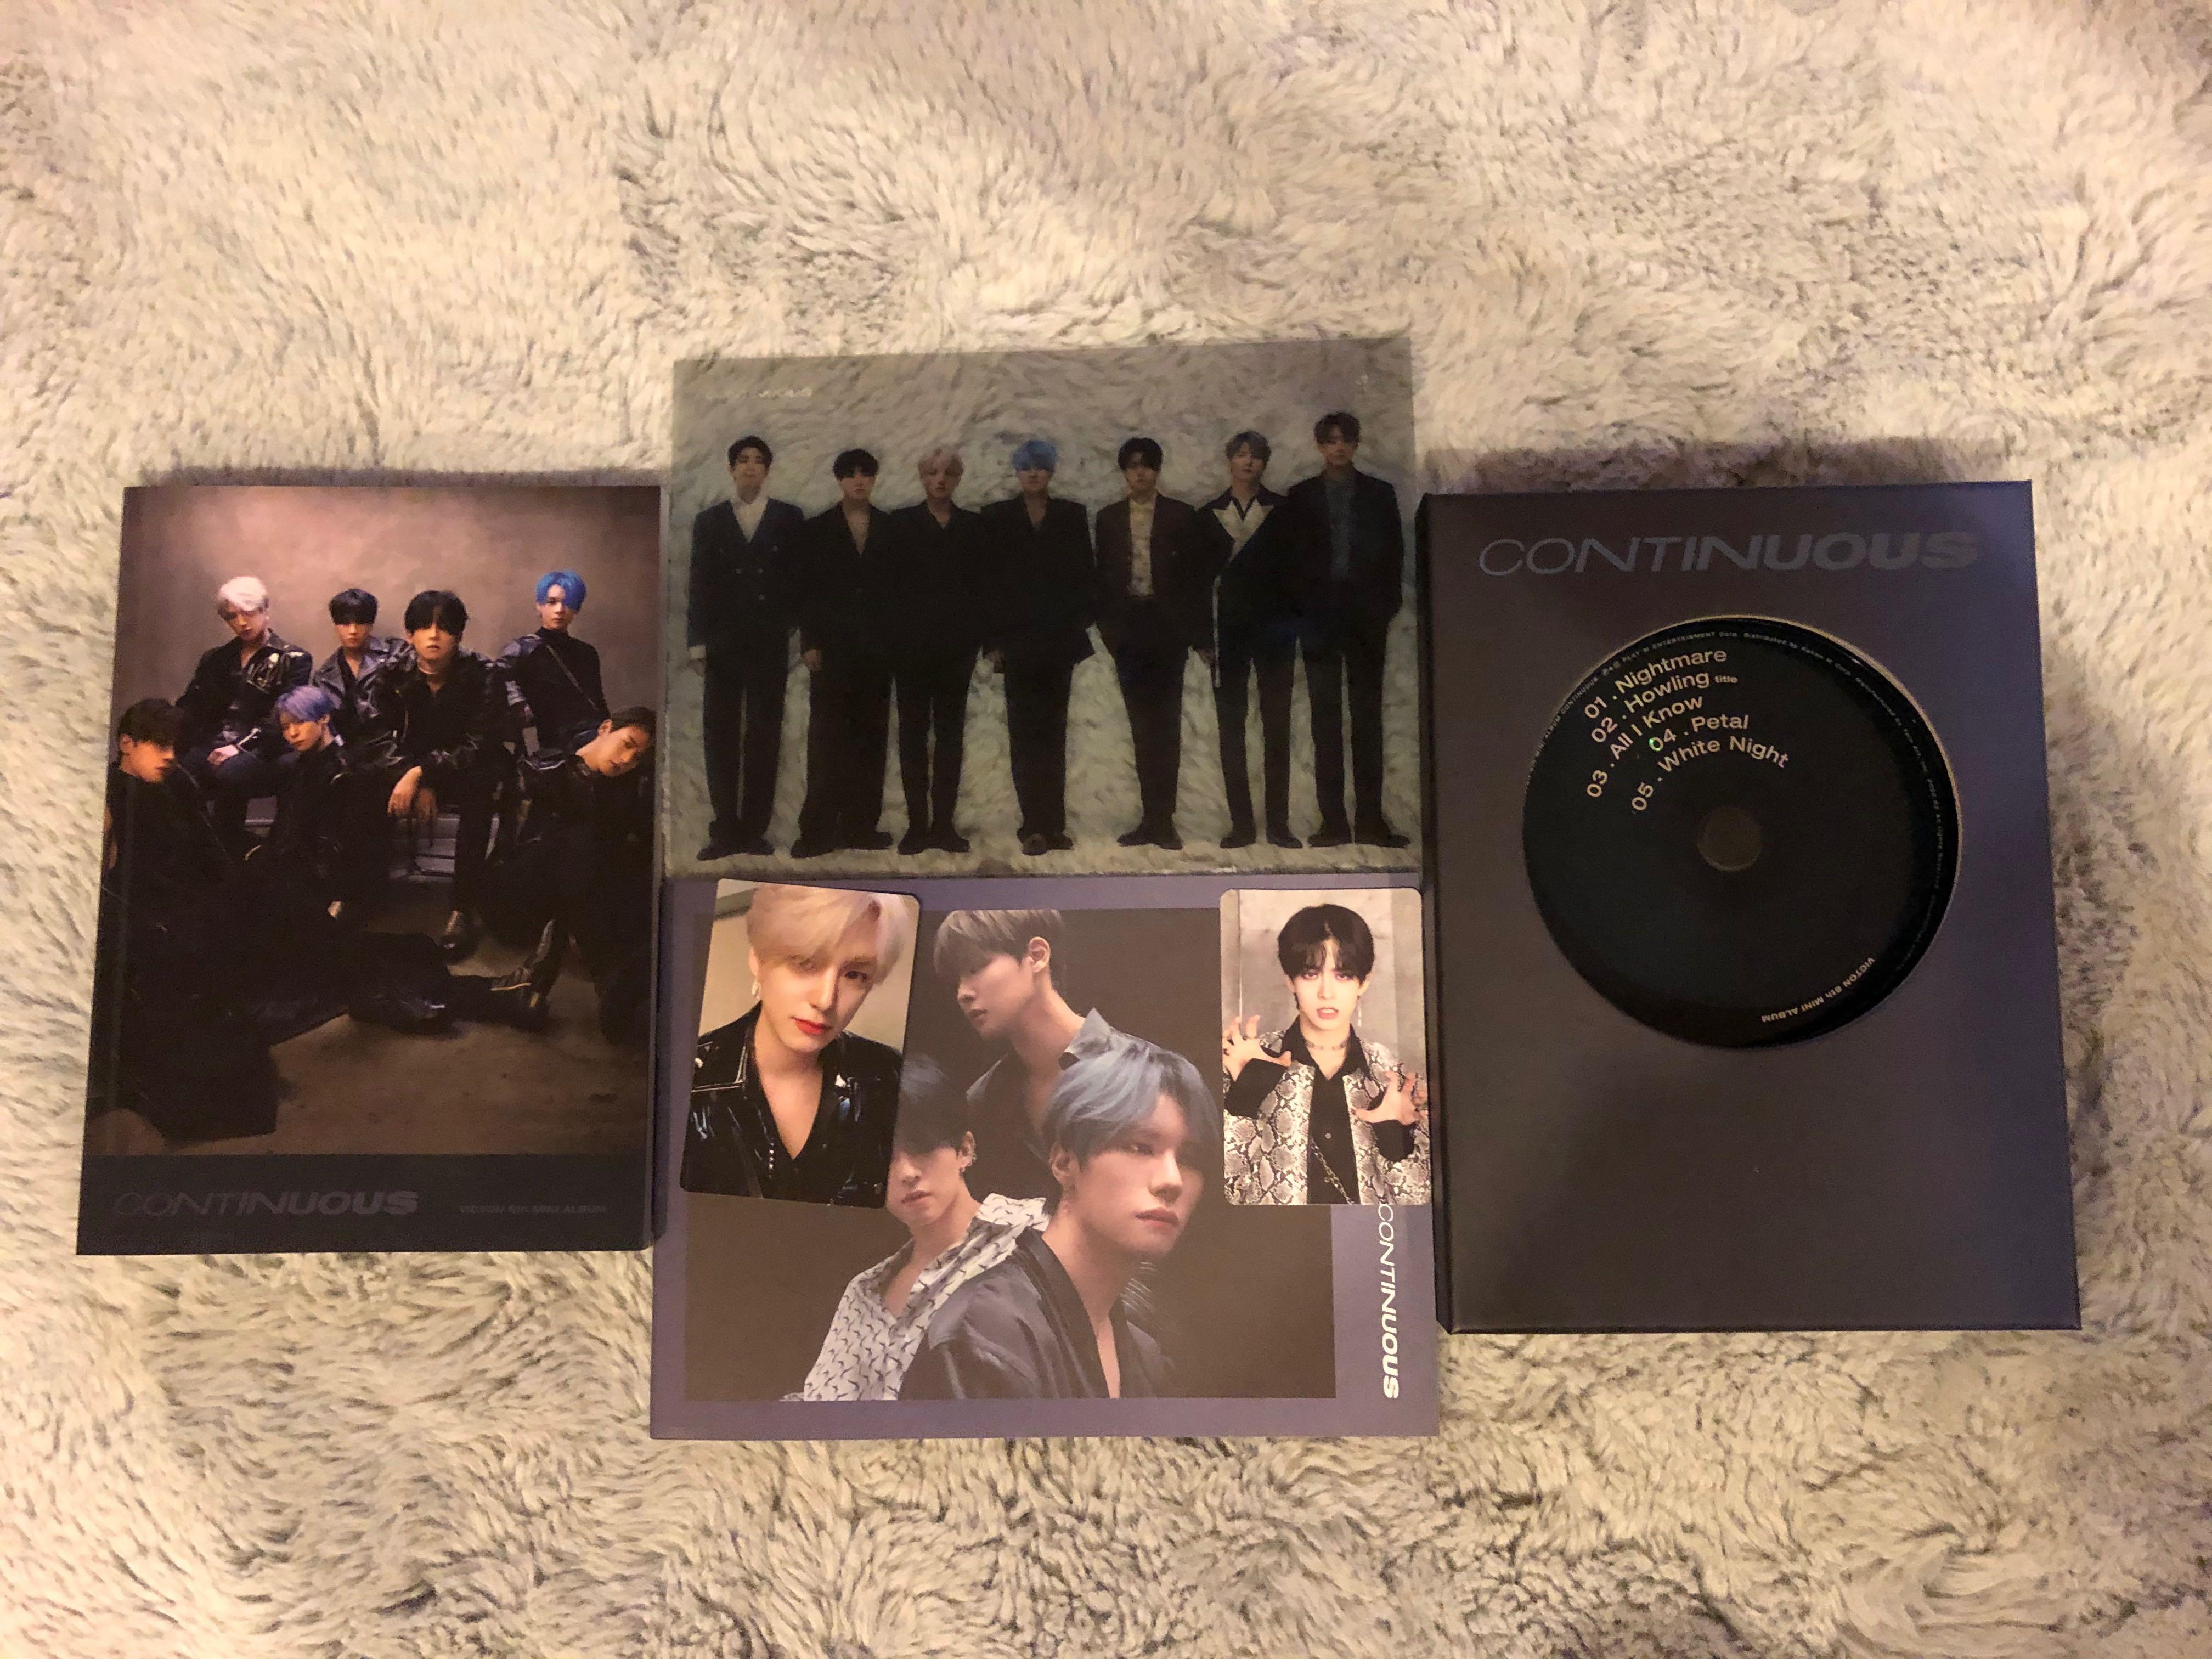 Victon Continuous Album Dark ver (Subin AR PC & Heo Chan PC)